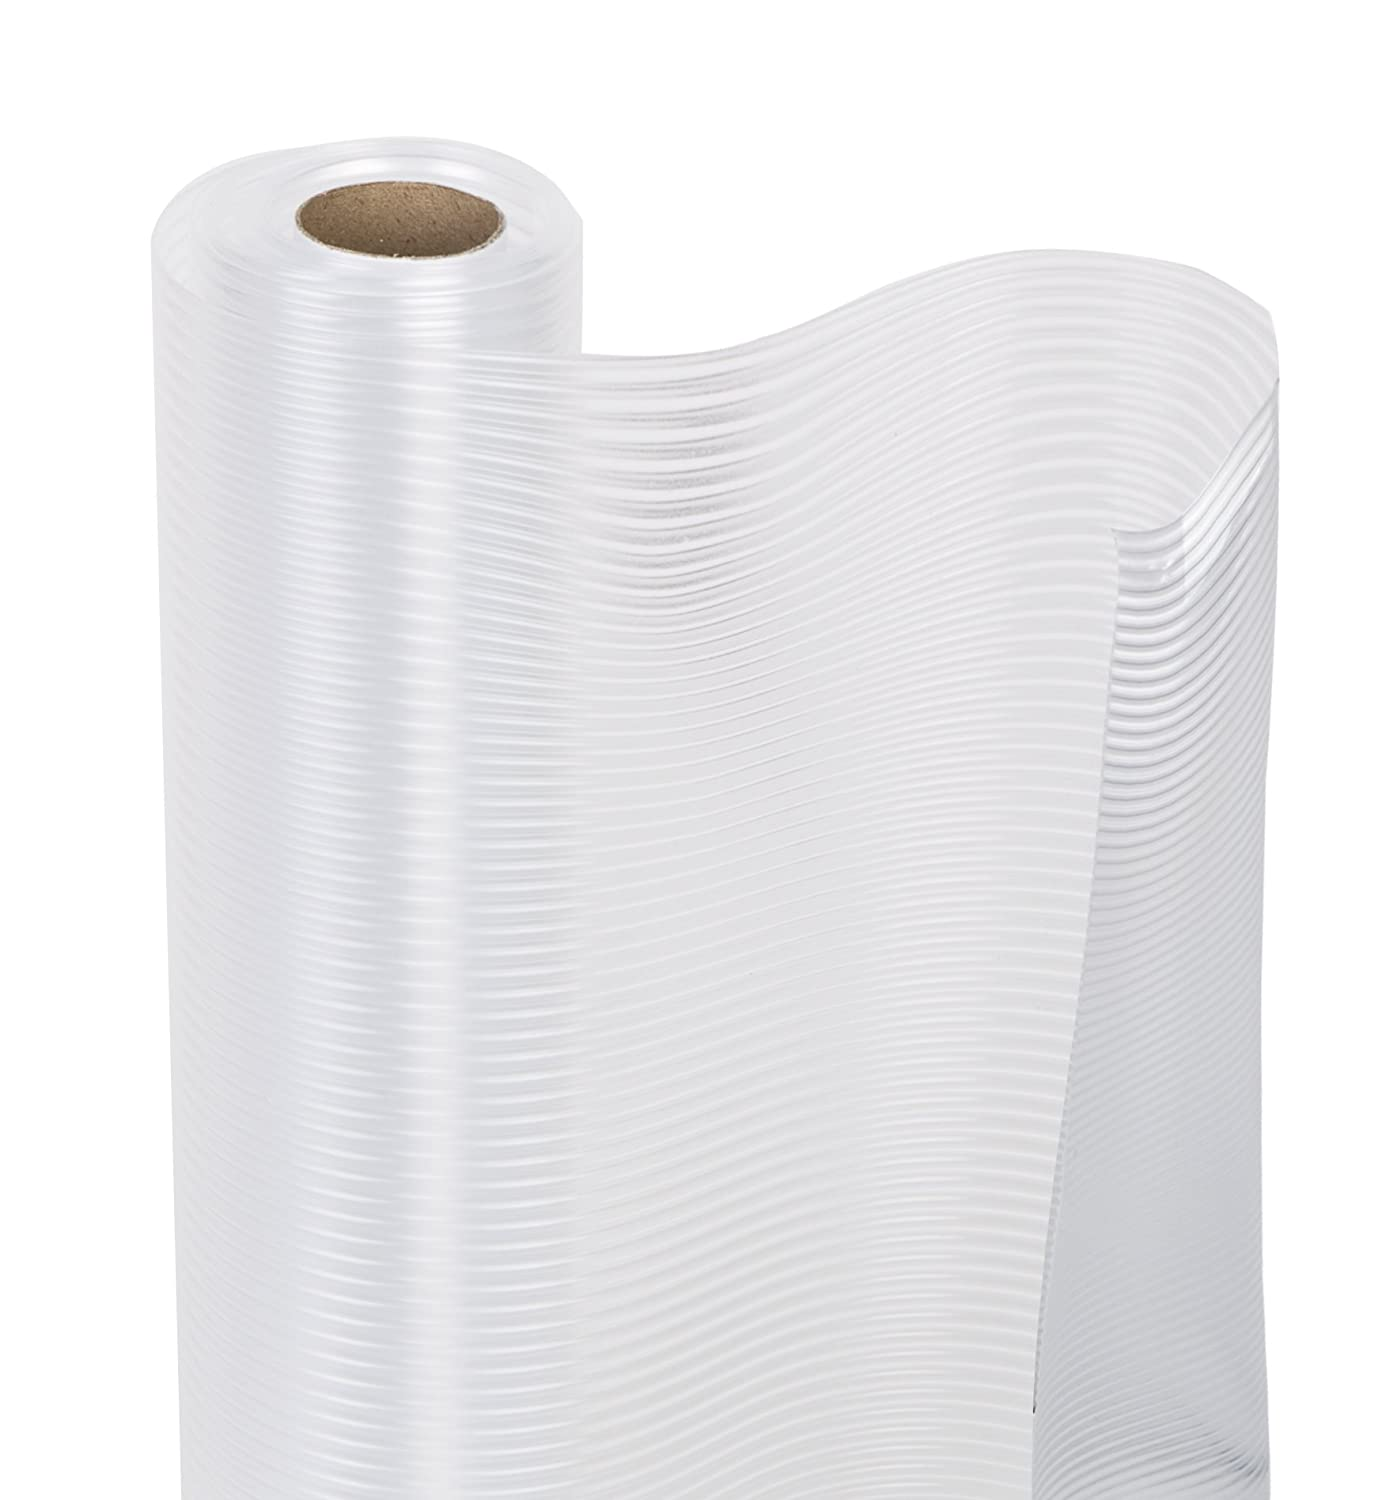 Pro-Mart 8811118 White Ribbed Shelf Liner, 12x 6' 12x 6' DAZZ